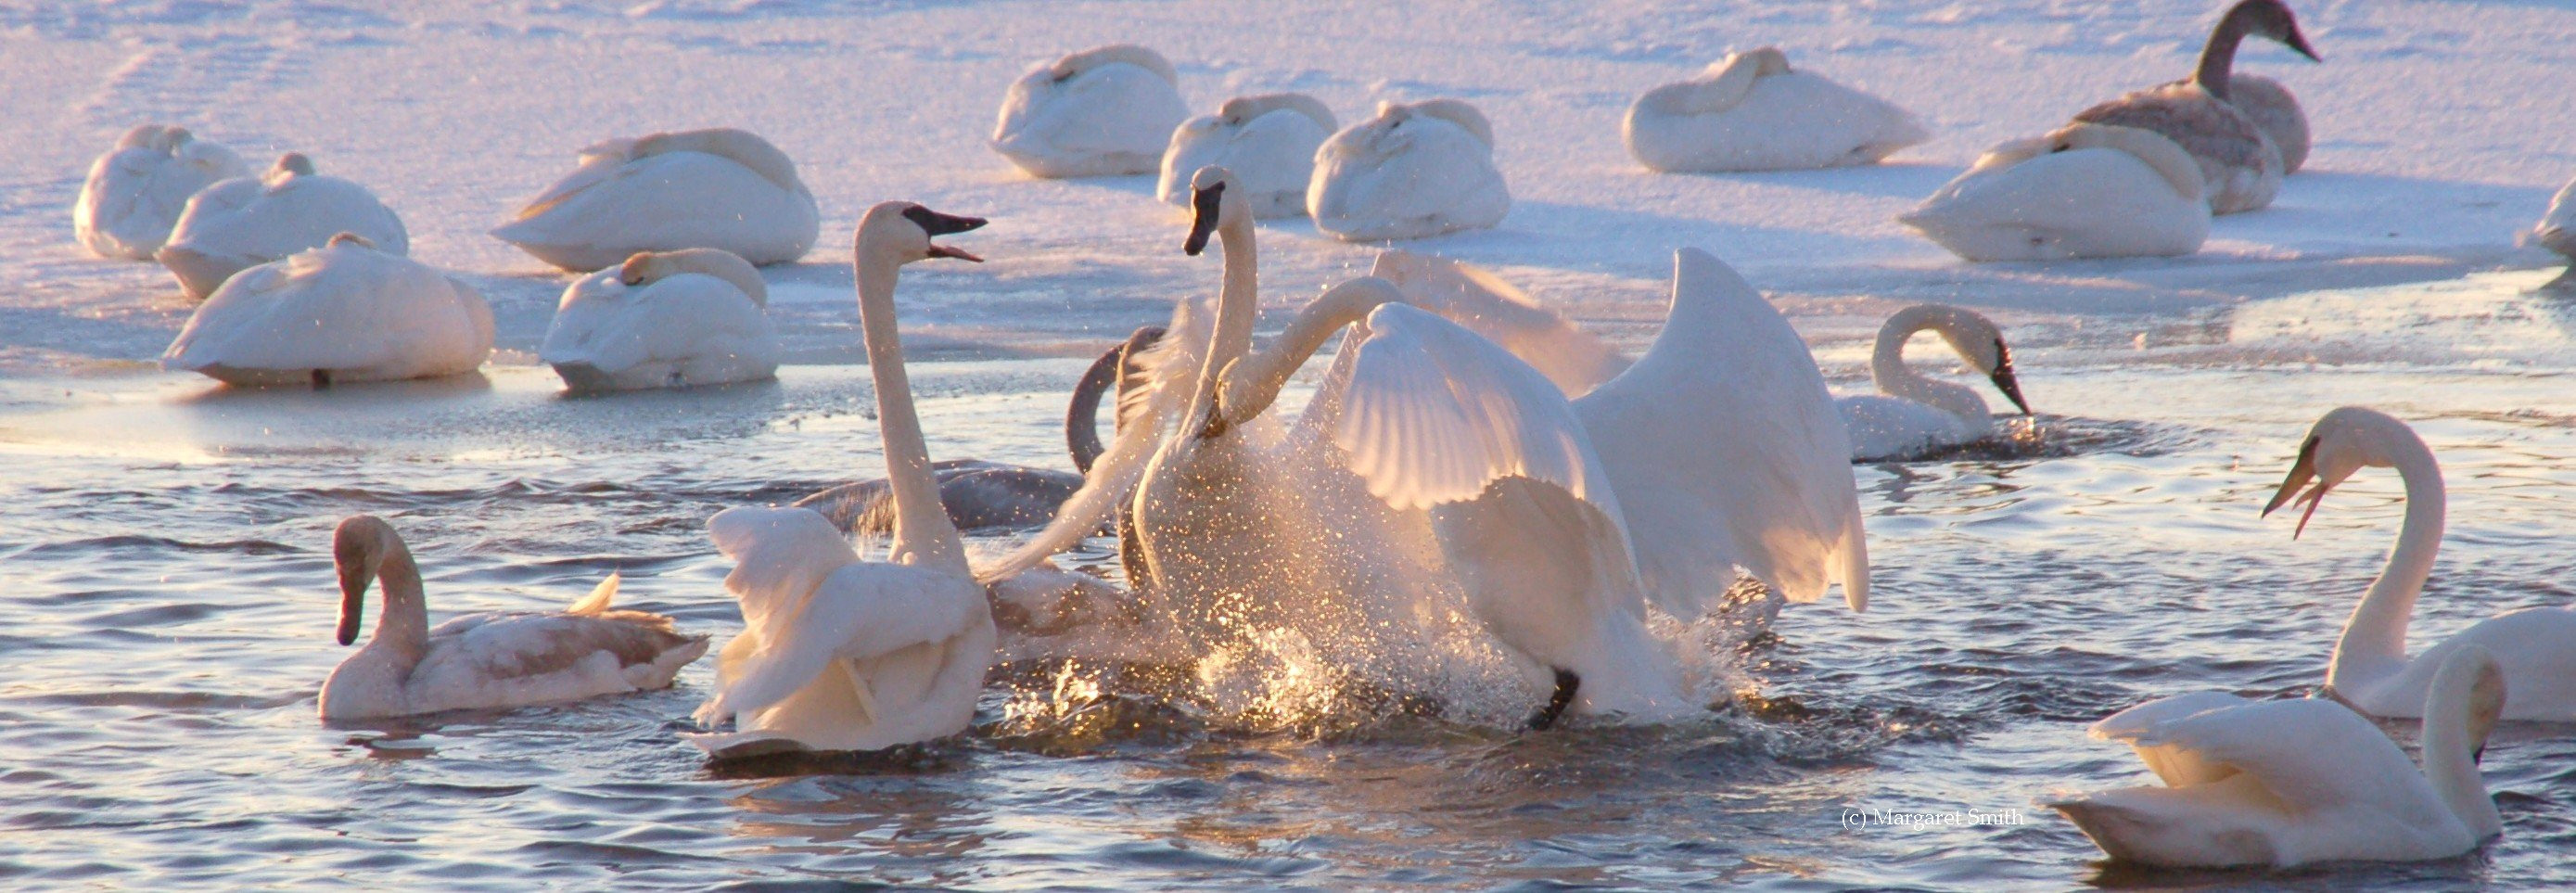 The Interior Population of swans (Midwest and Ontario) was restored entirely through restoration efforts